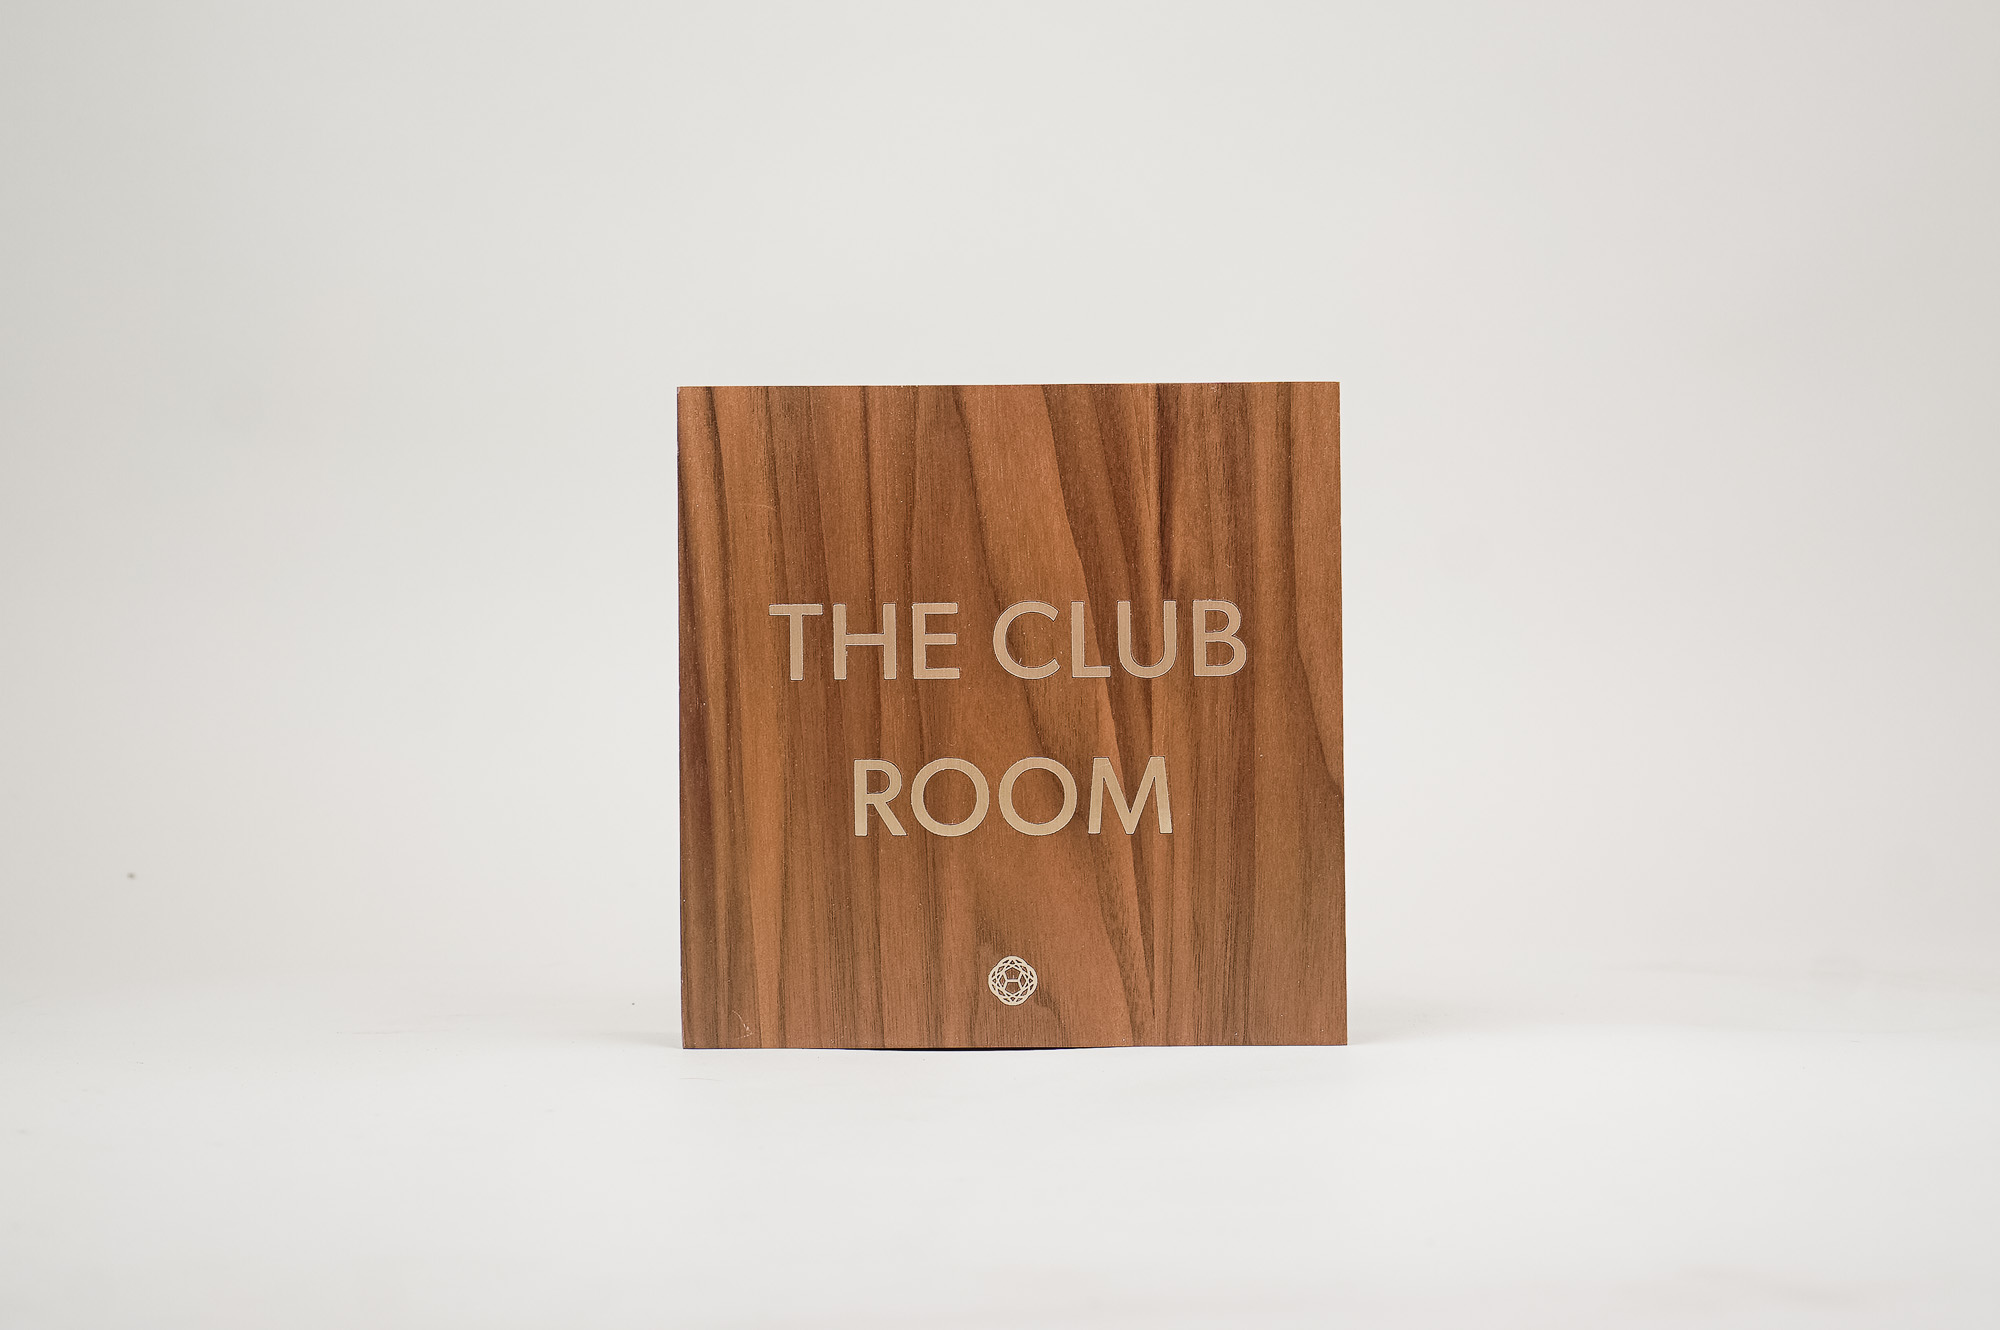 Vintage walnut and inlaid-brass style sign for Nexus Club, a private social and business club in New York.